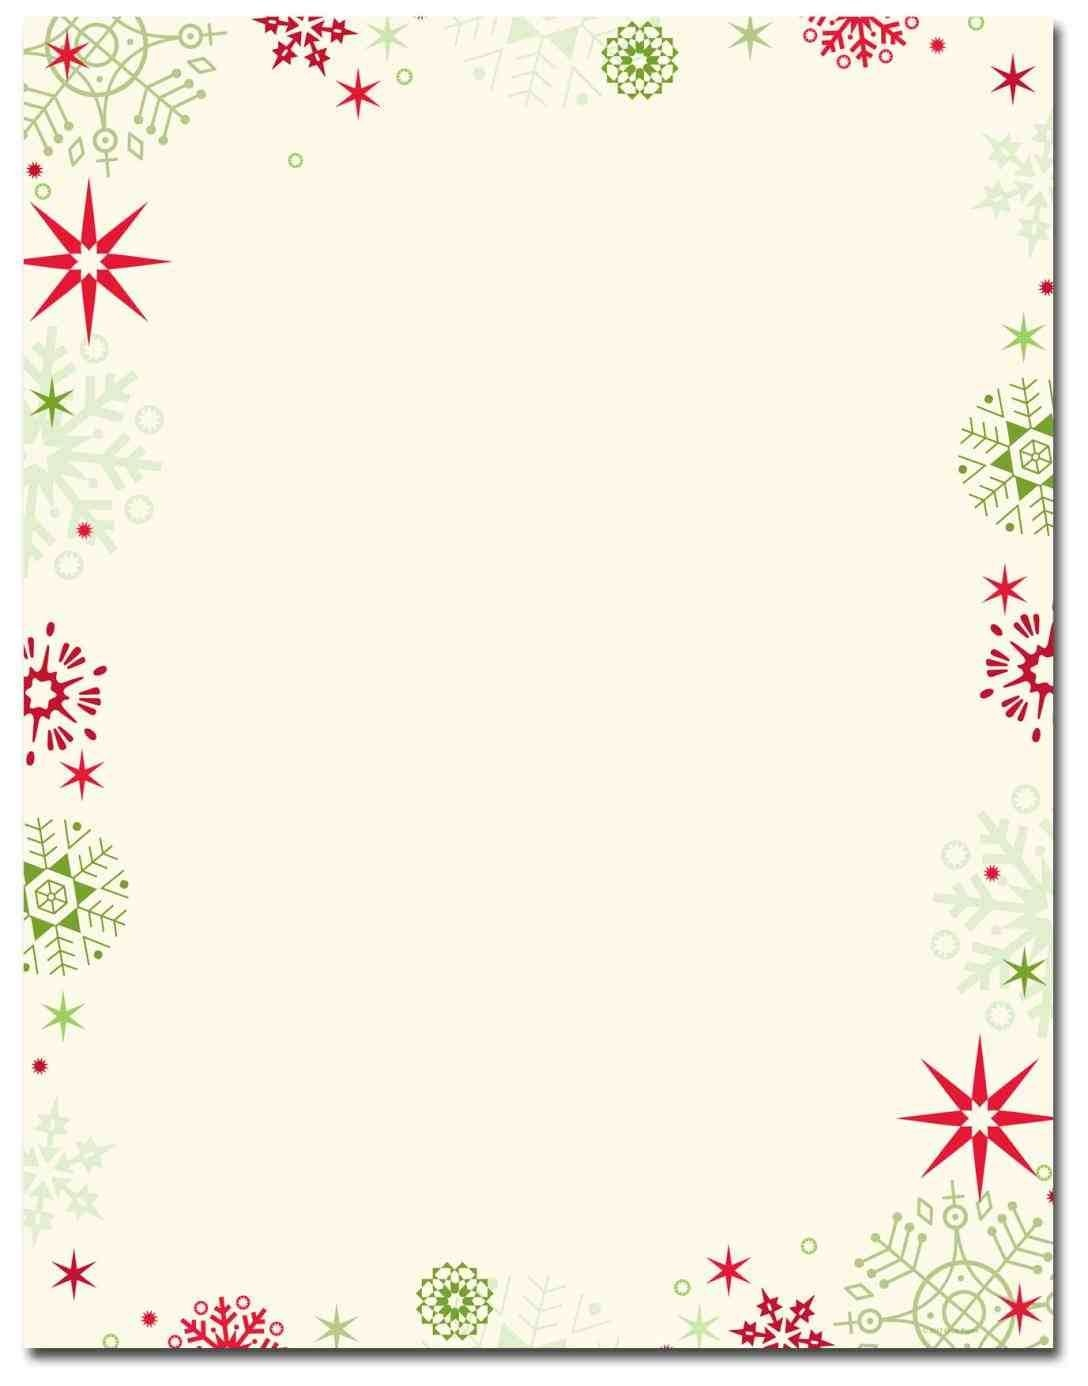 New Free Printable Christmas Stationary Borders At Temasistemi - Free Printable Christmas Letterhead